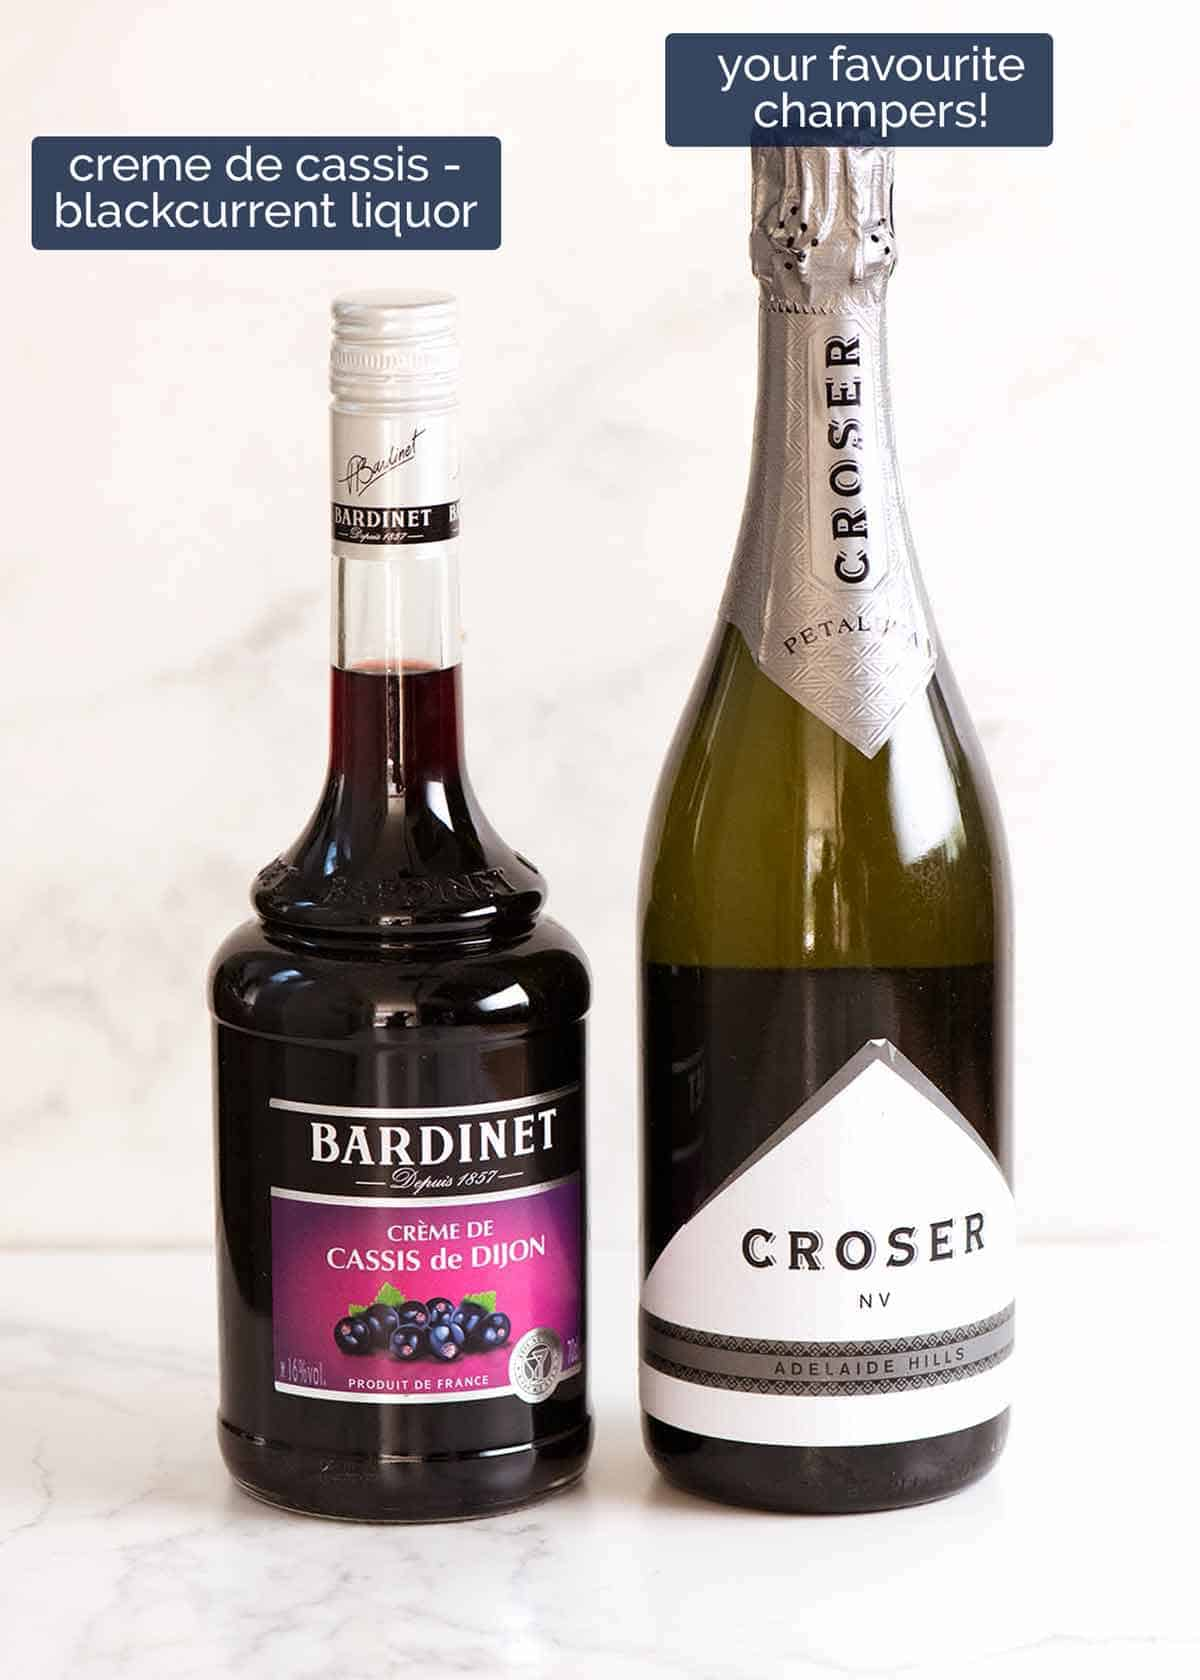 What goes in Kir Royales - champagne and creme de cassis (blackcurrant liquor)